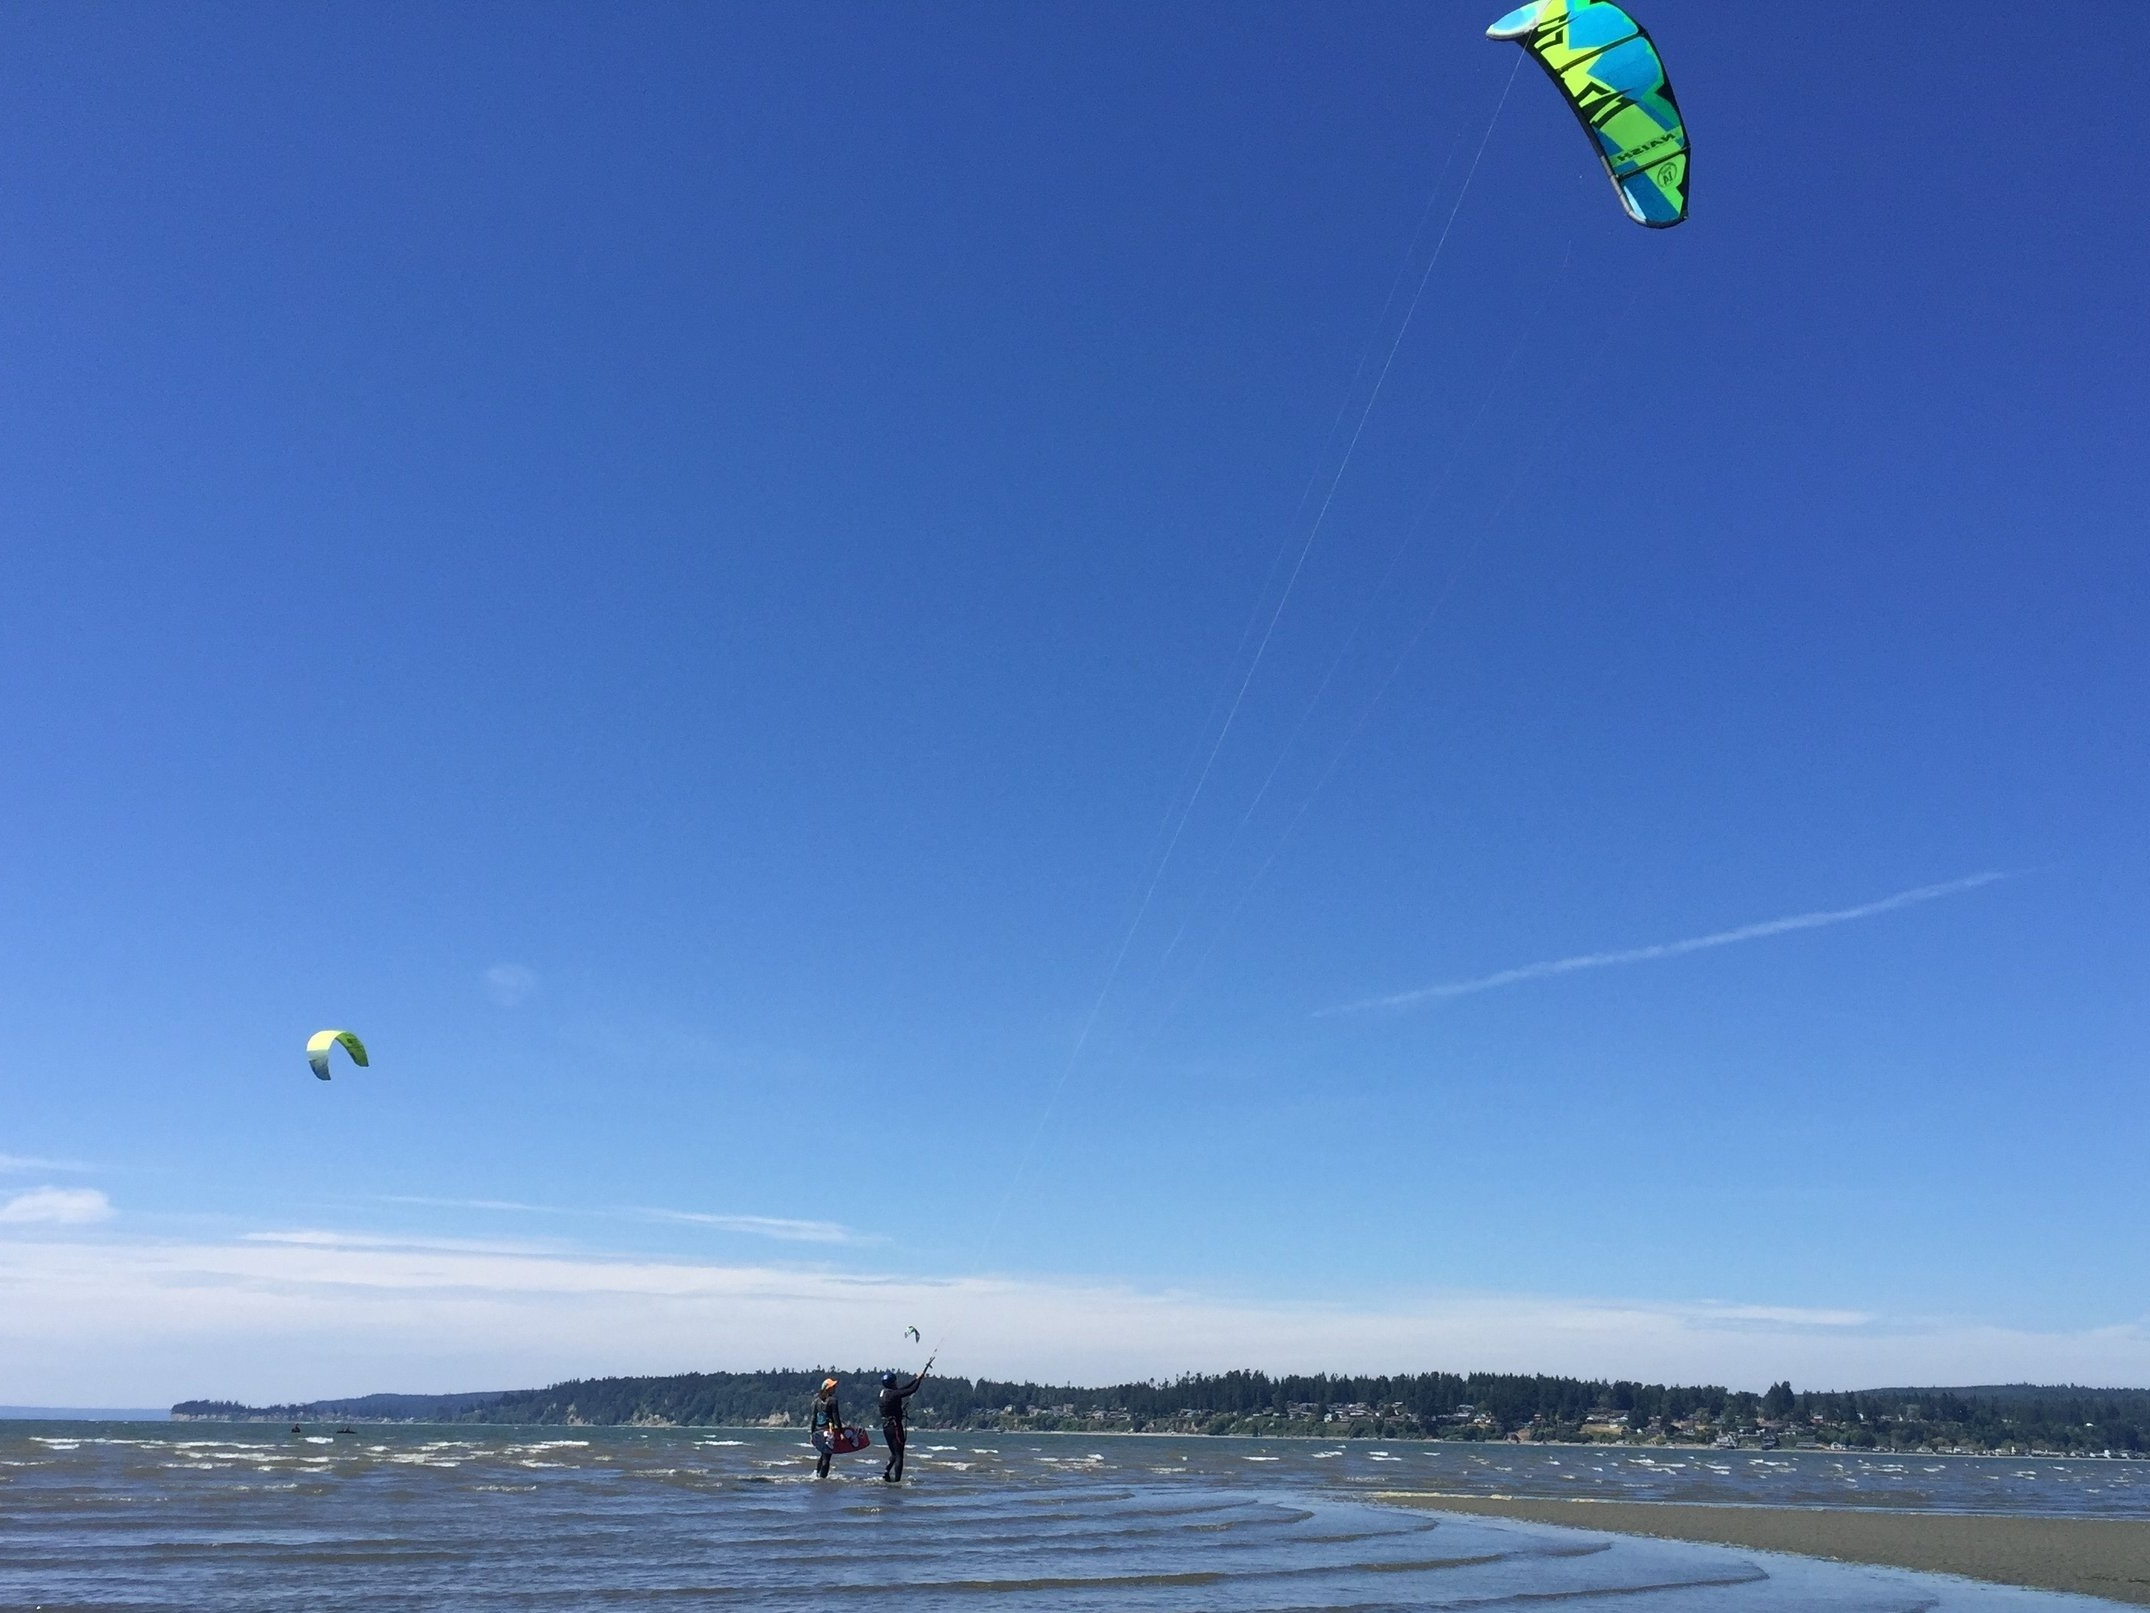 Second Kiteboard Lesson at Jetty Island with Urban Surf